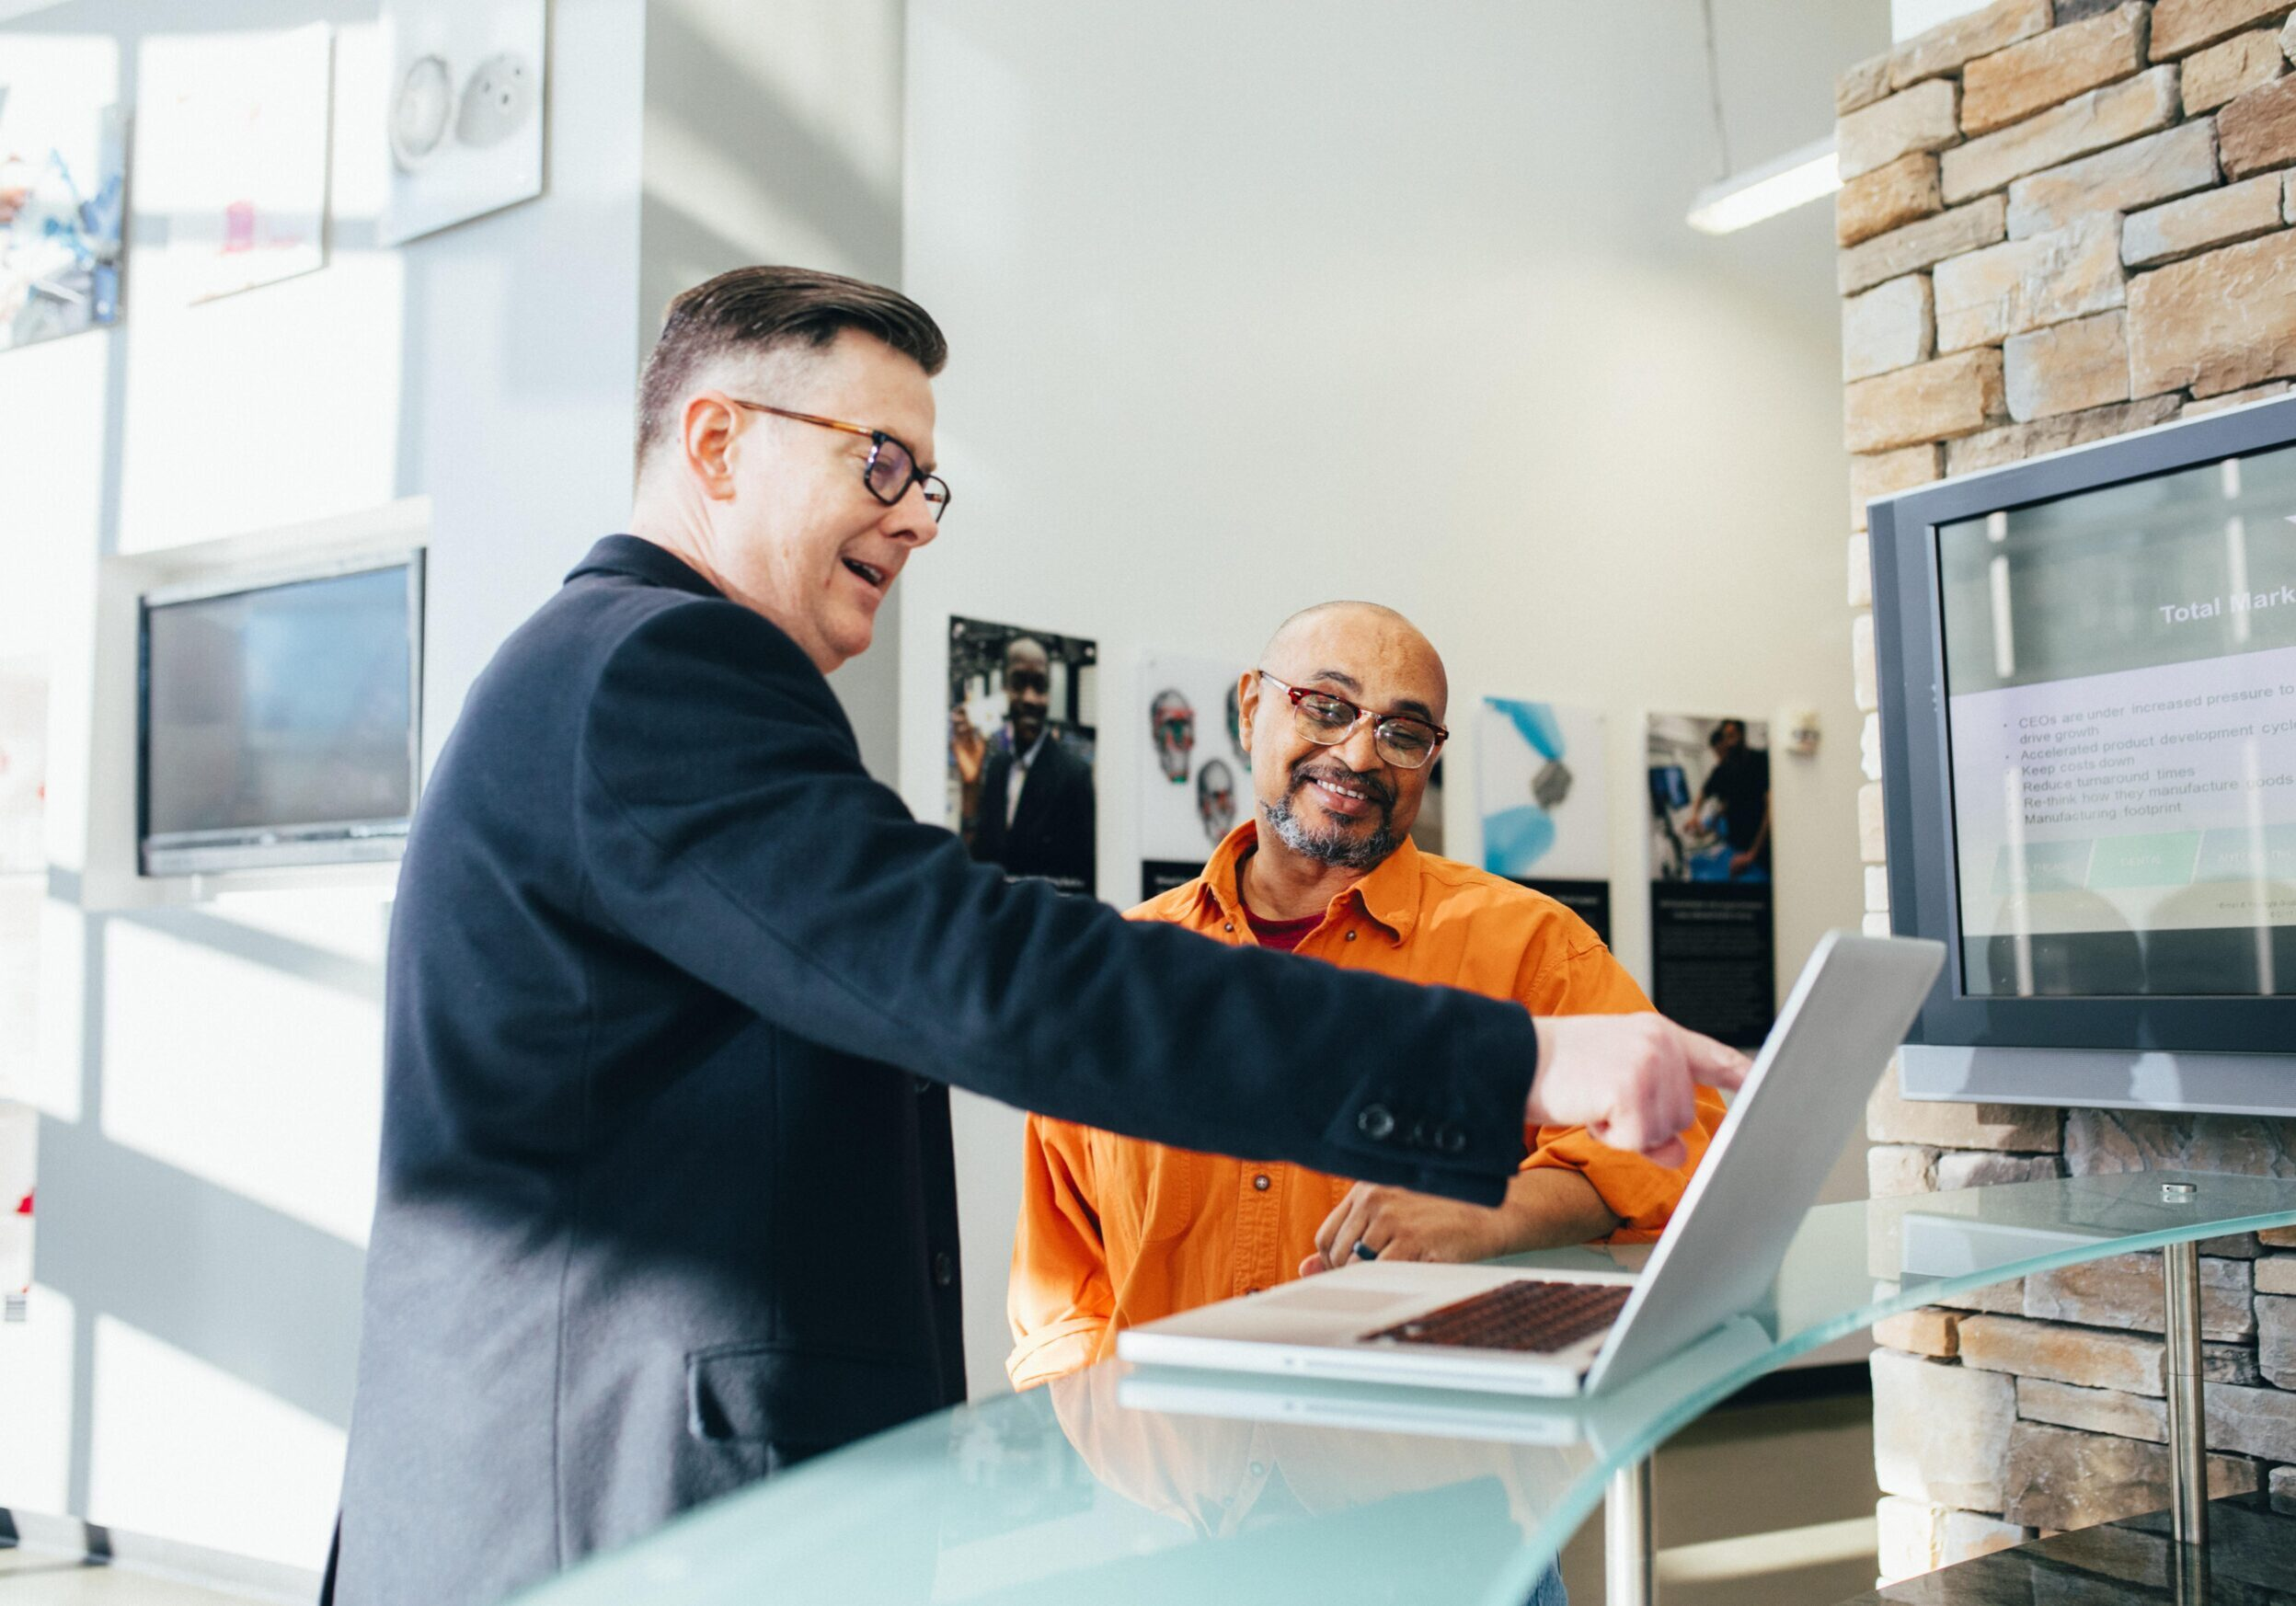 Two mentors meeting and pointing to a laptop